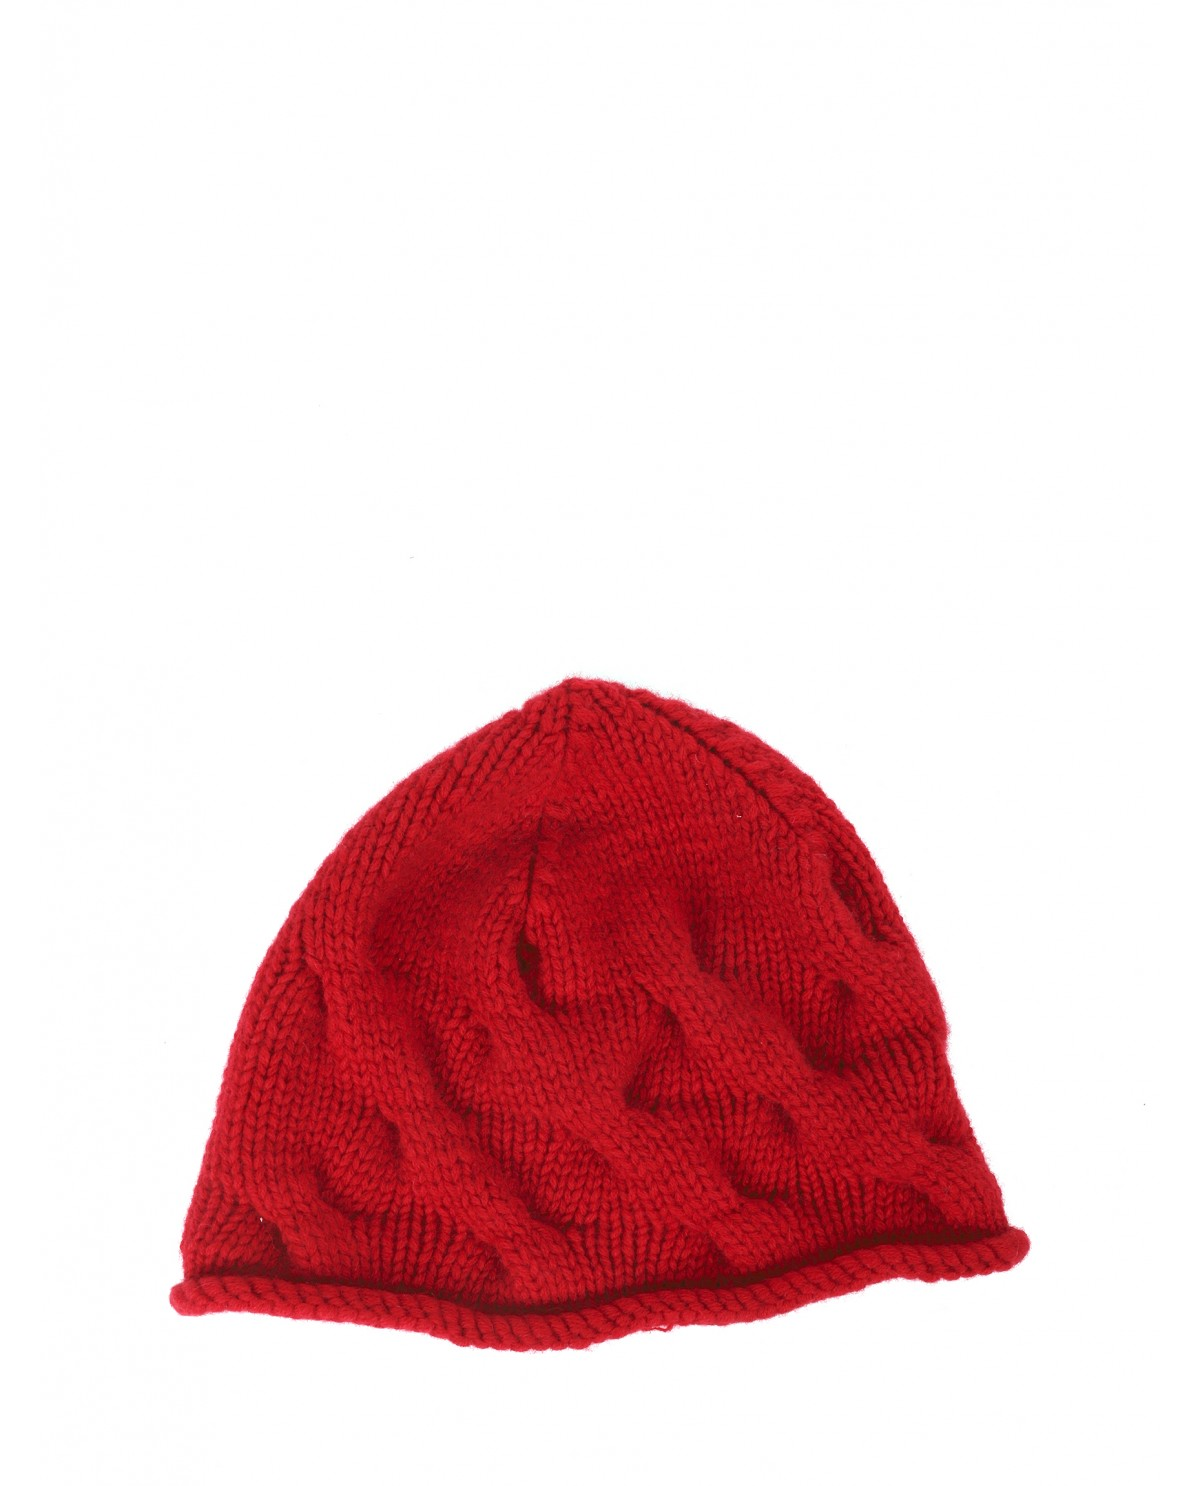 CXB red Grongo hat